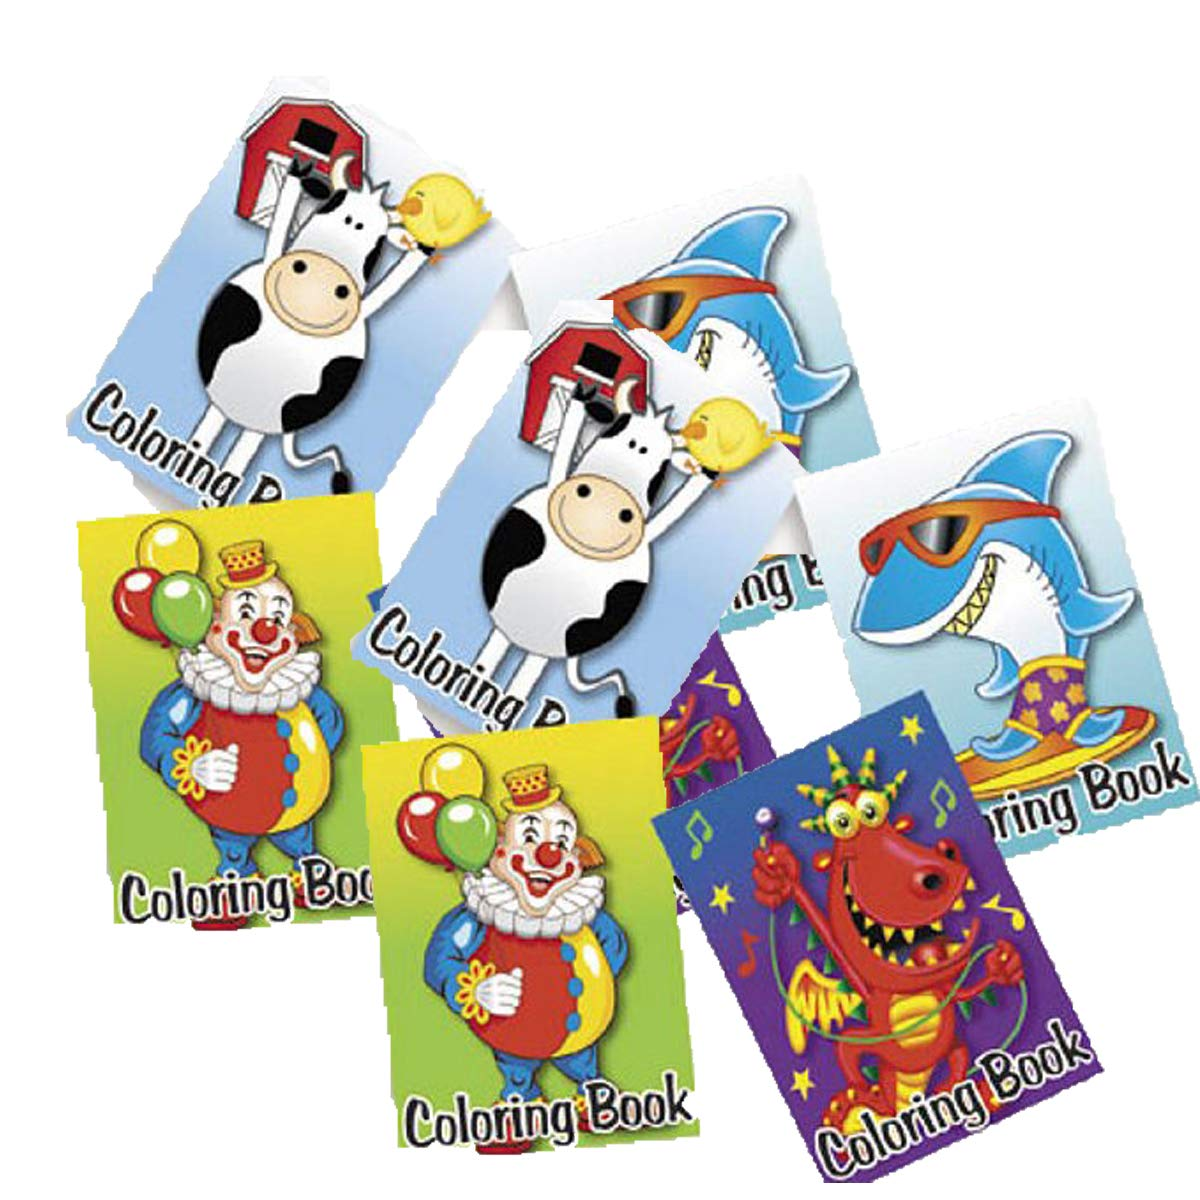 Amazon.com: 72-pack of Kid's Coloring Books ~ Great Party Favors! Assorted  Designs: Toys & Games